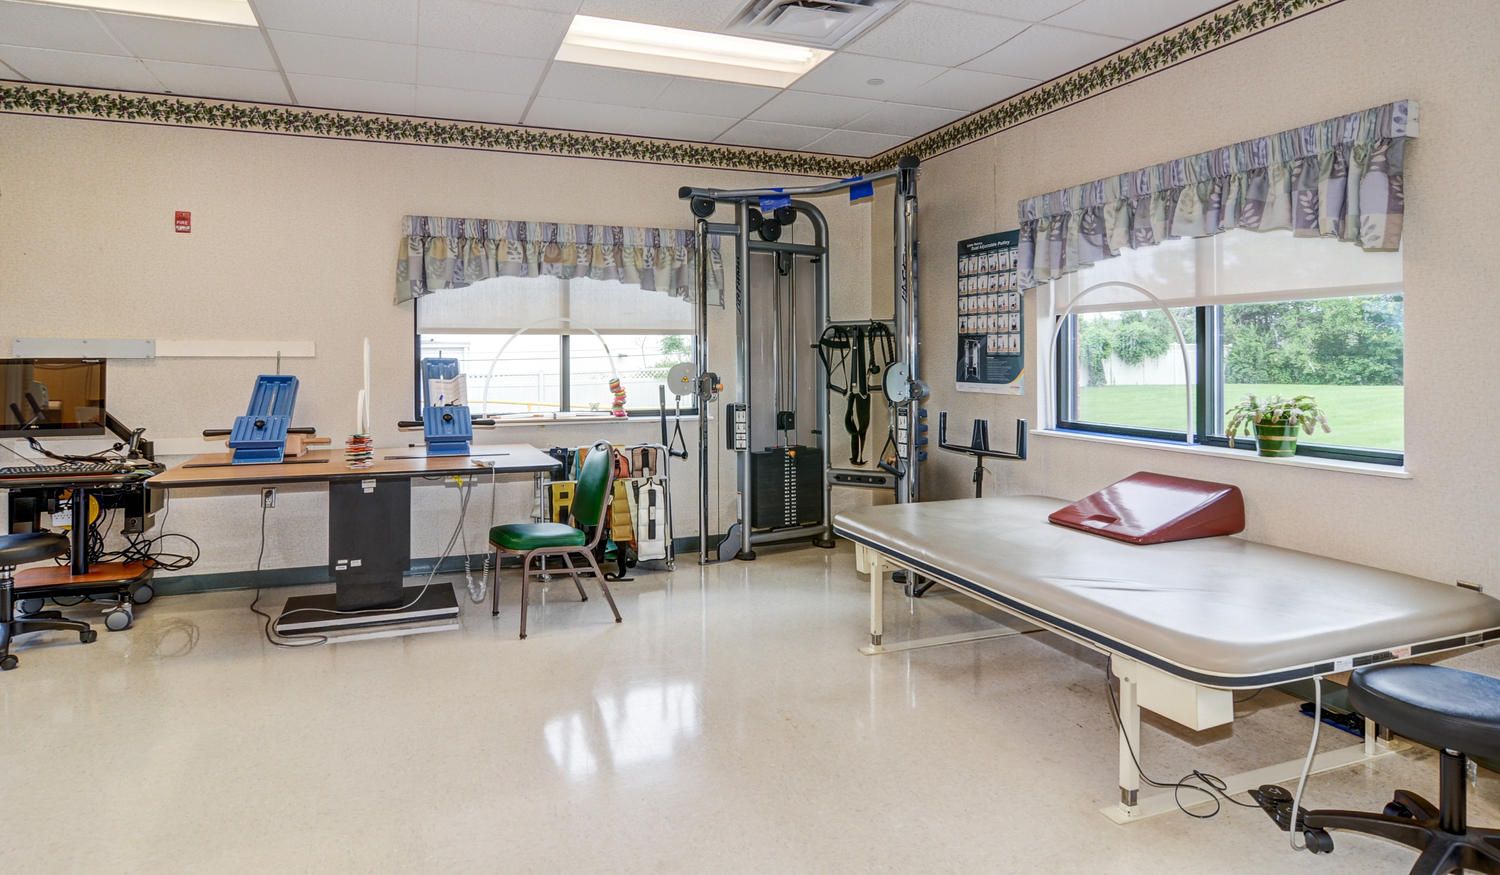 Stonerise Martinsburg therapy and rehabilitation gym interior